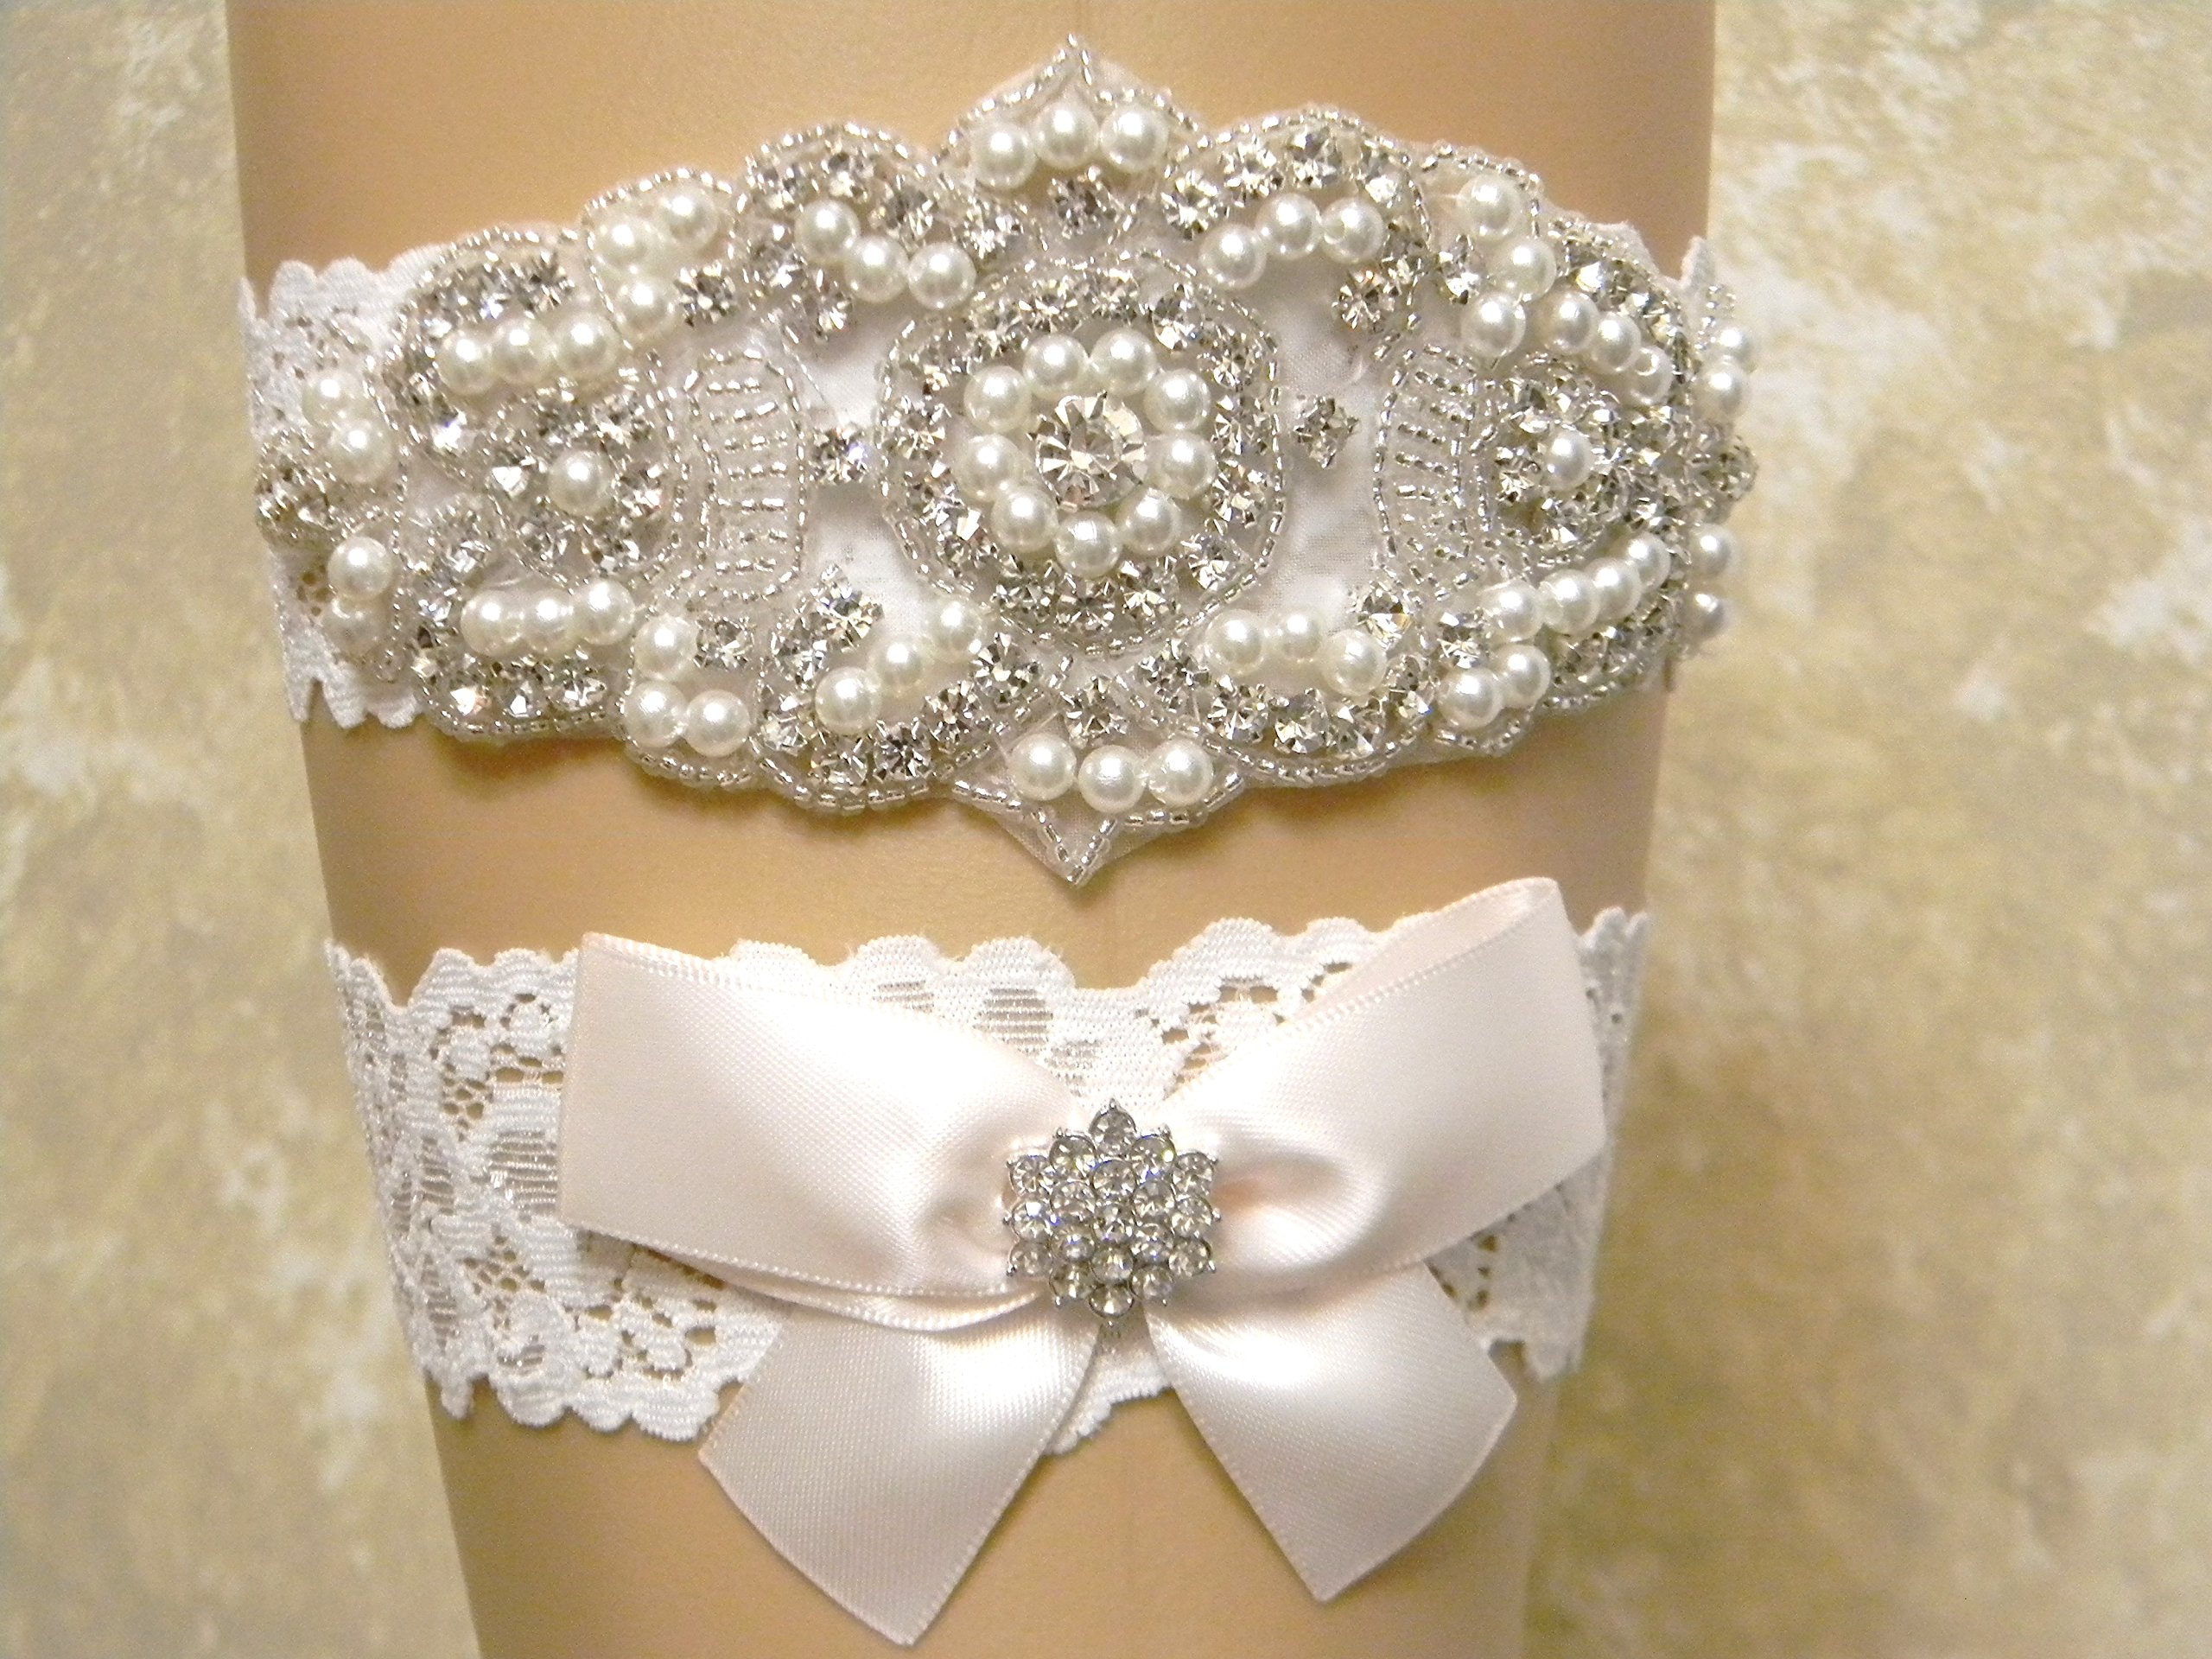 Hint of Pink Wedding Garter Set, Bridal Garter Belt, Pearl and Crystal Rhinestone Keepsake and Toss Garter Set, Lace Garters, MORE COLORS by PCB Studio